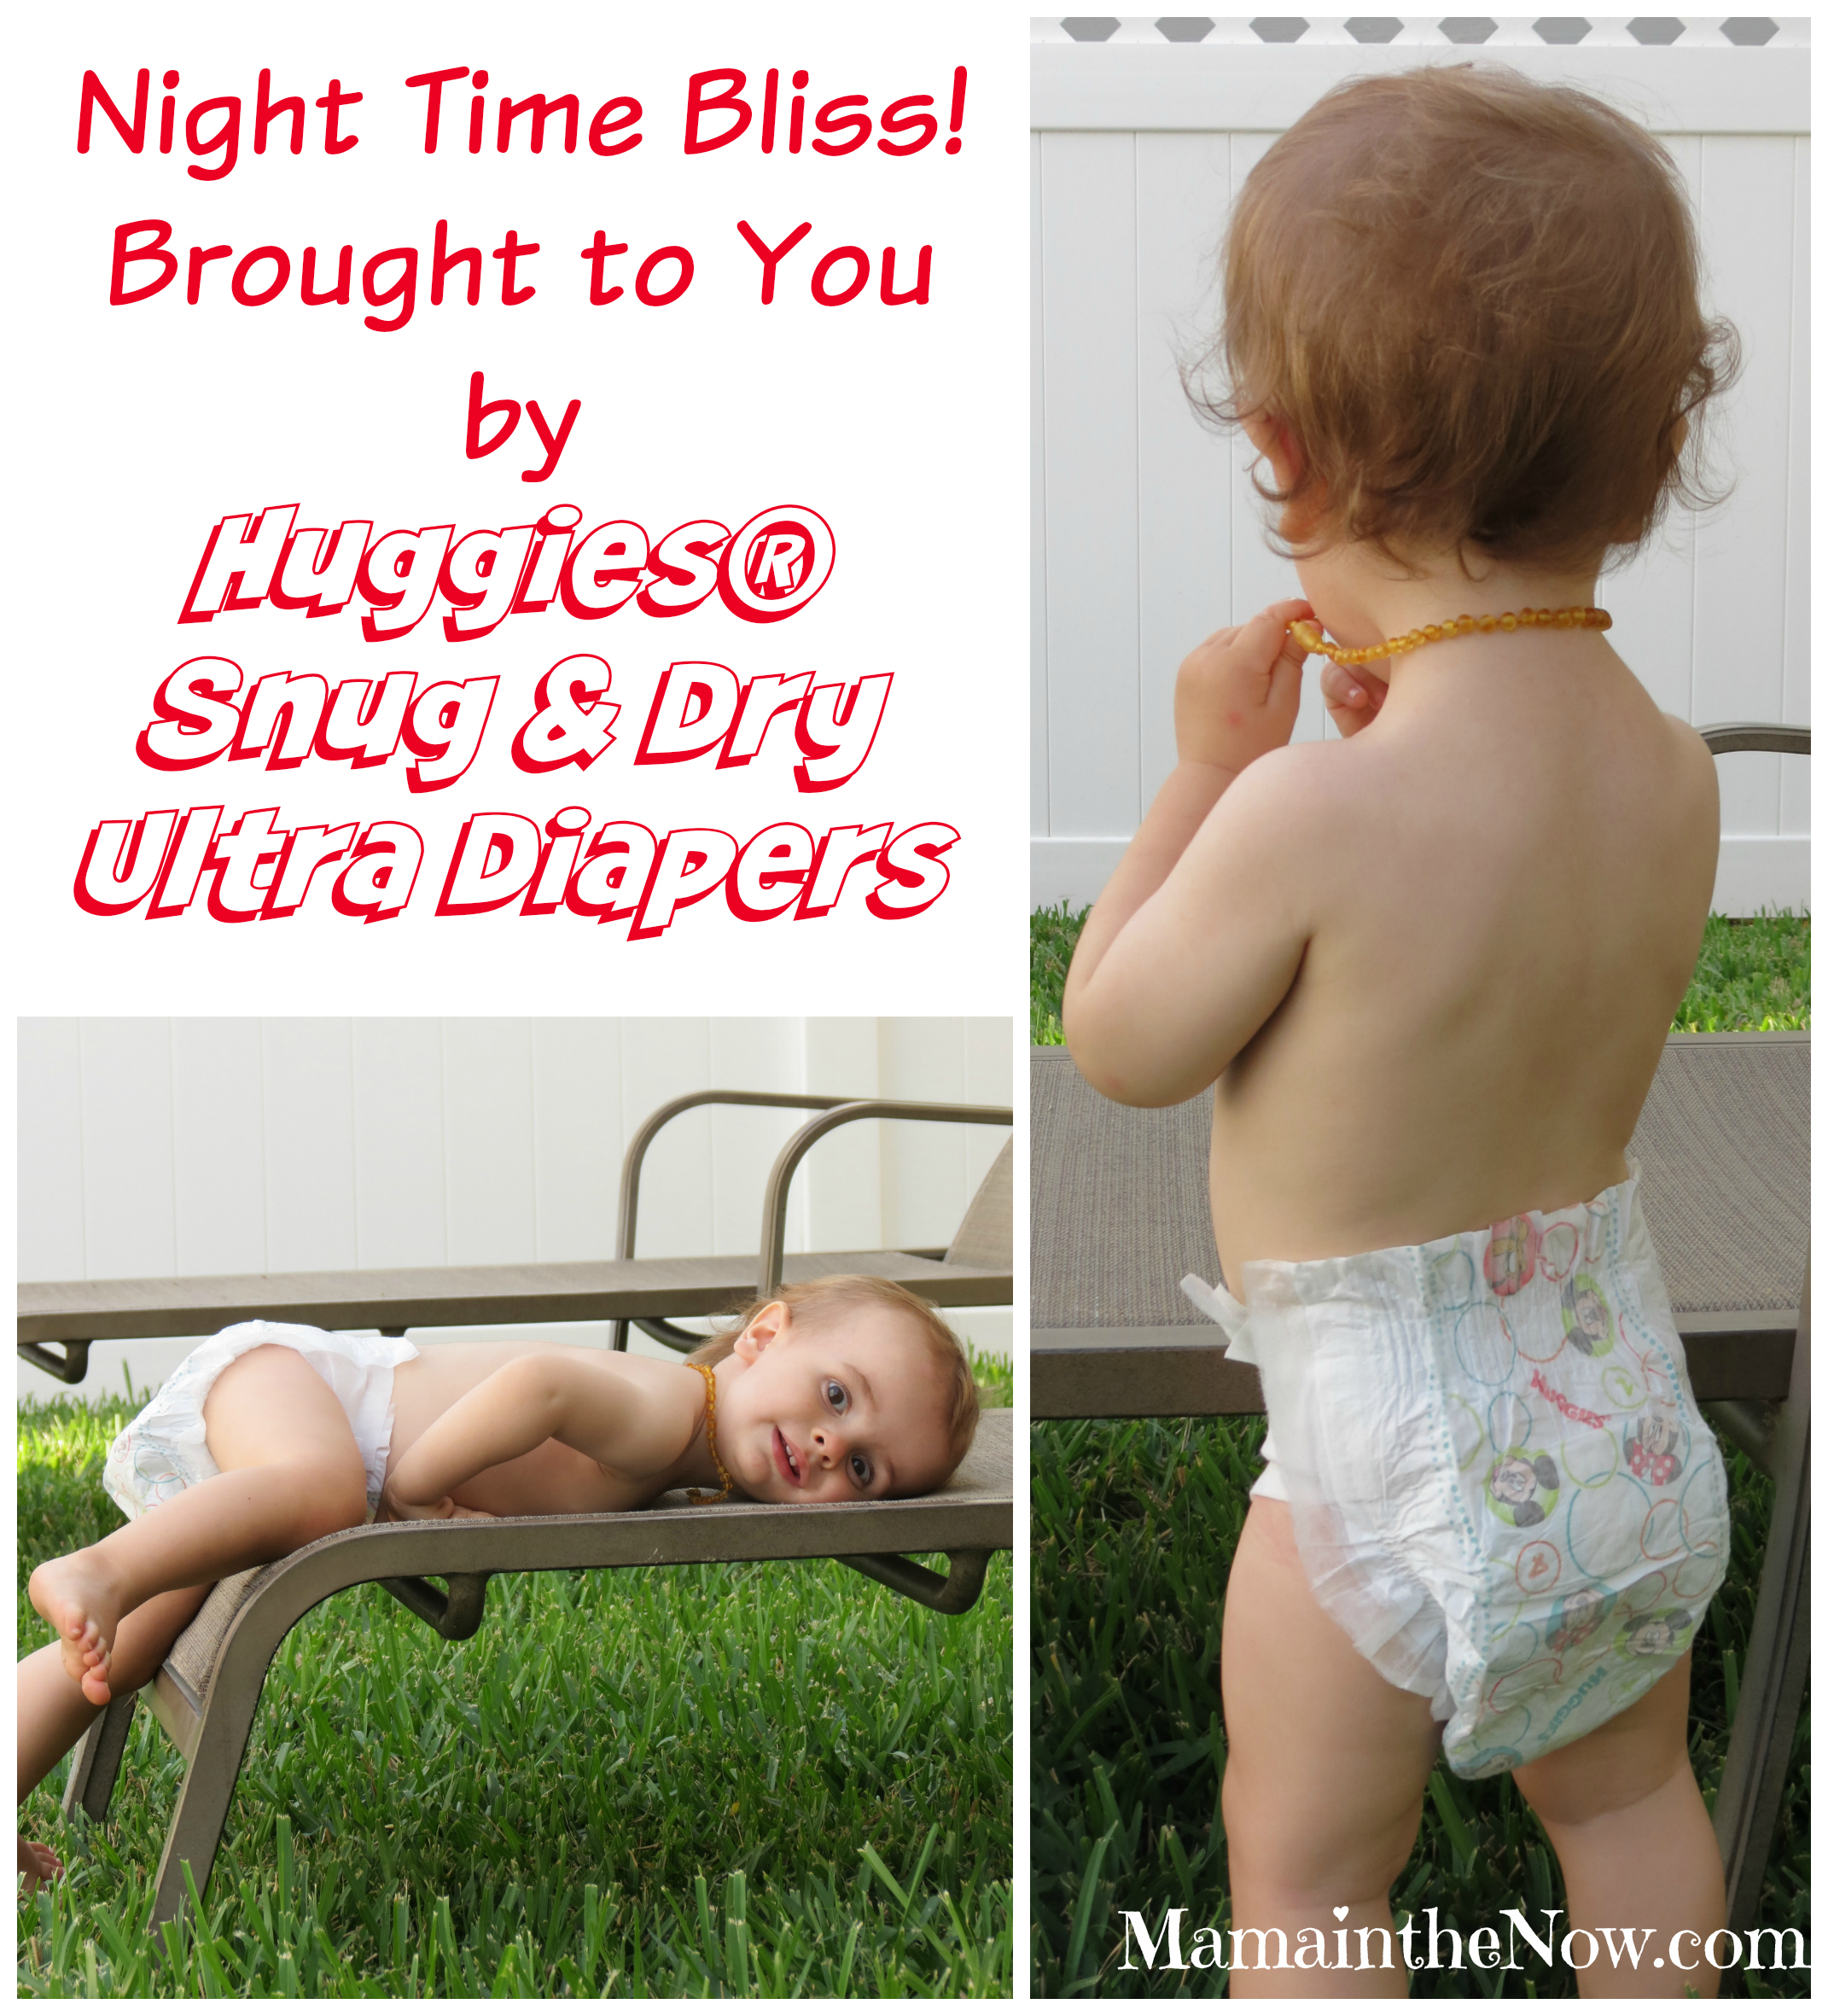 Night Time Bliss! Brought to You by Huggies Snug & Dry Ultra Diapers